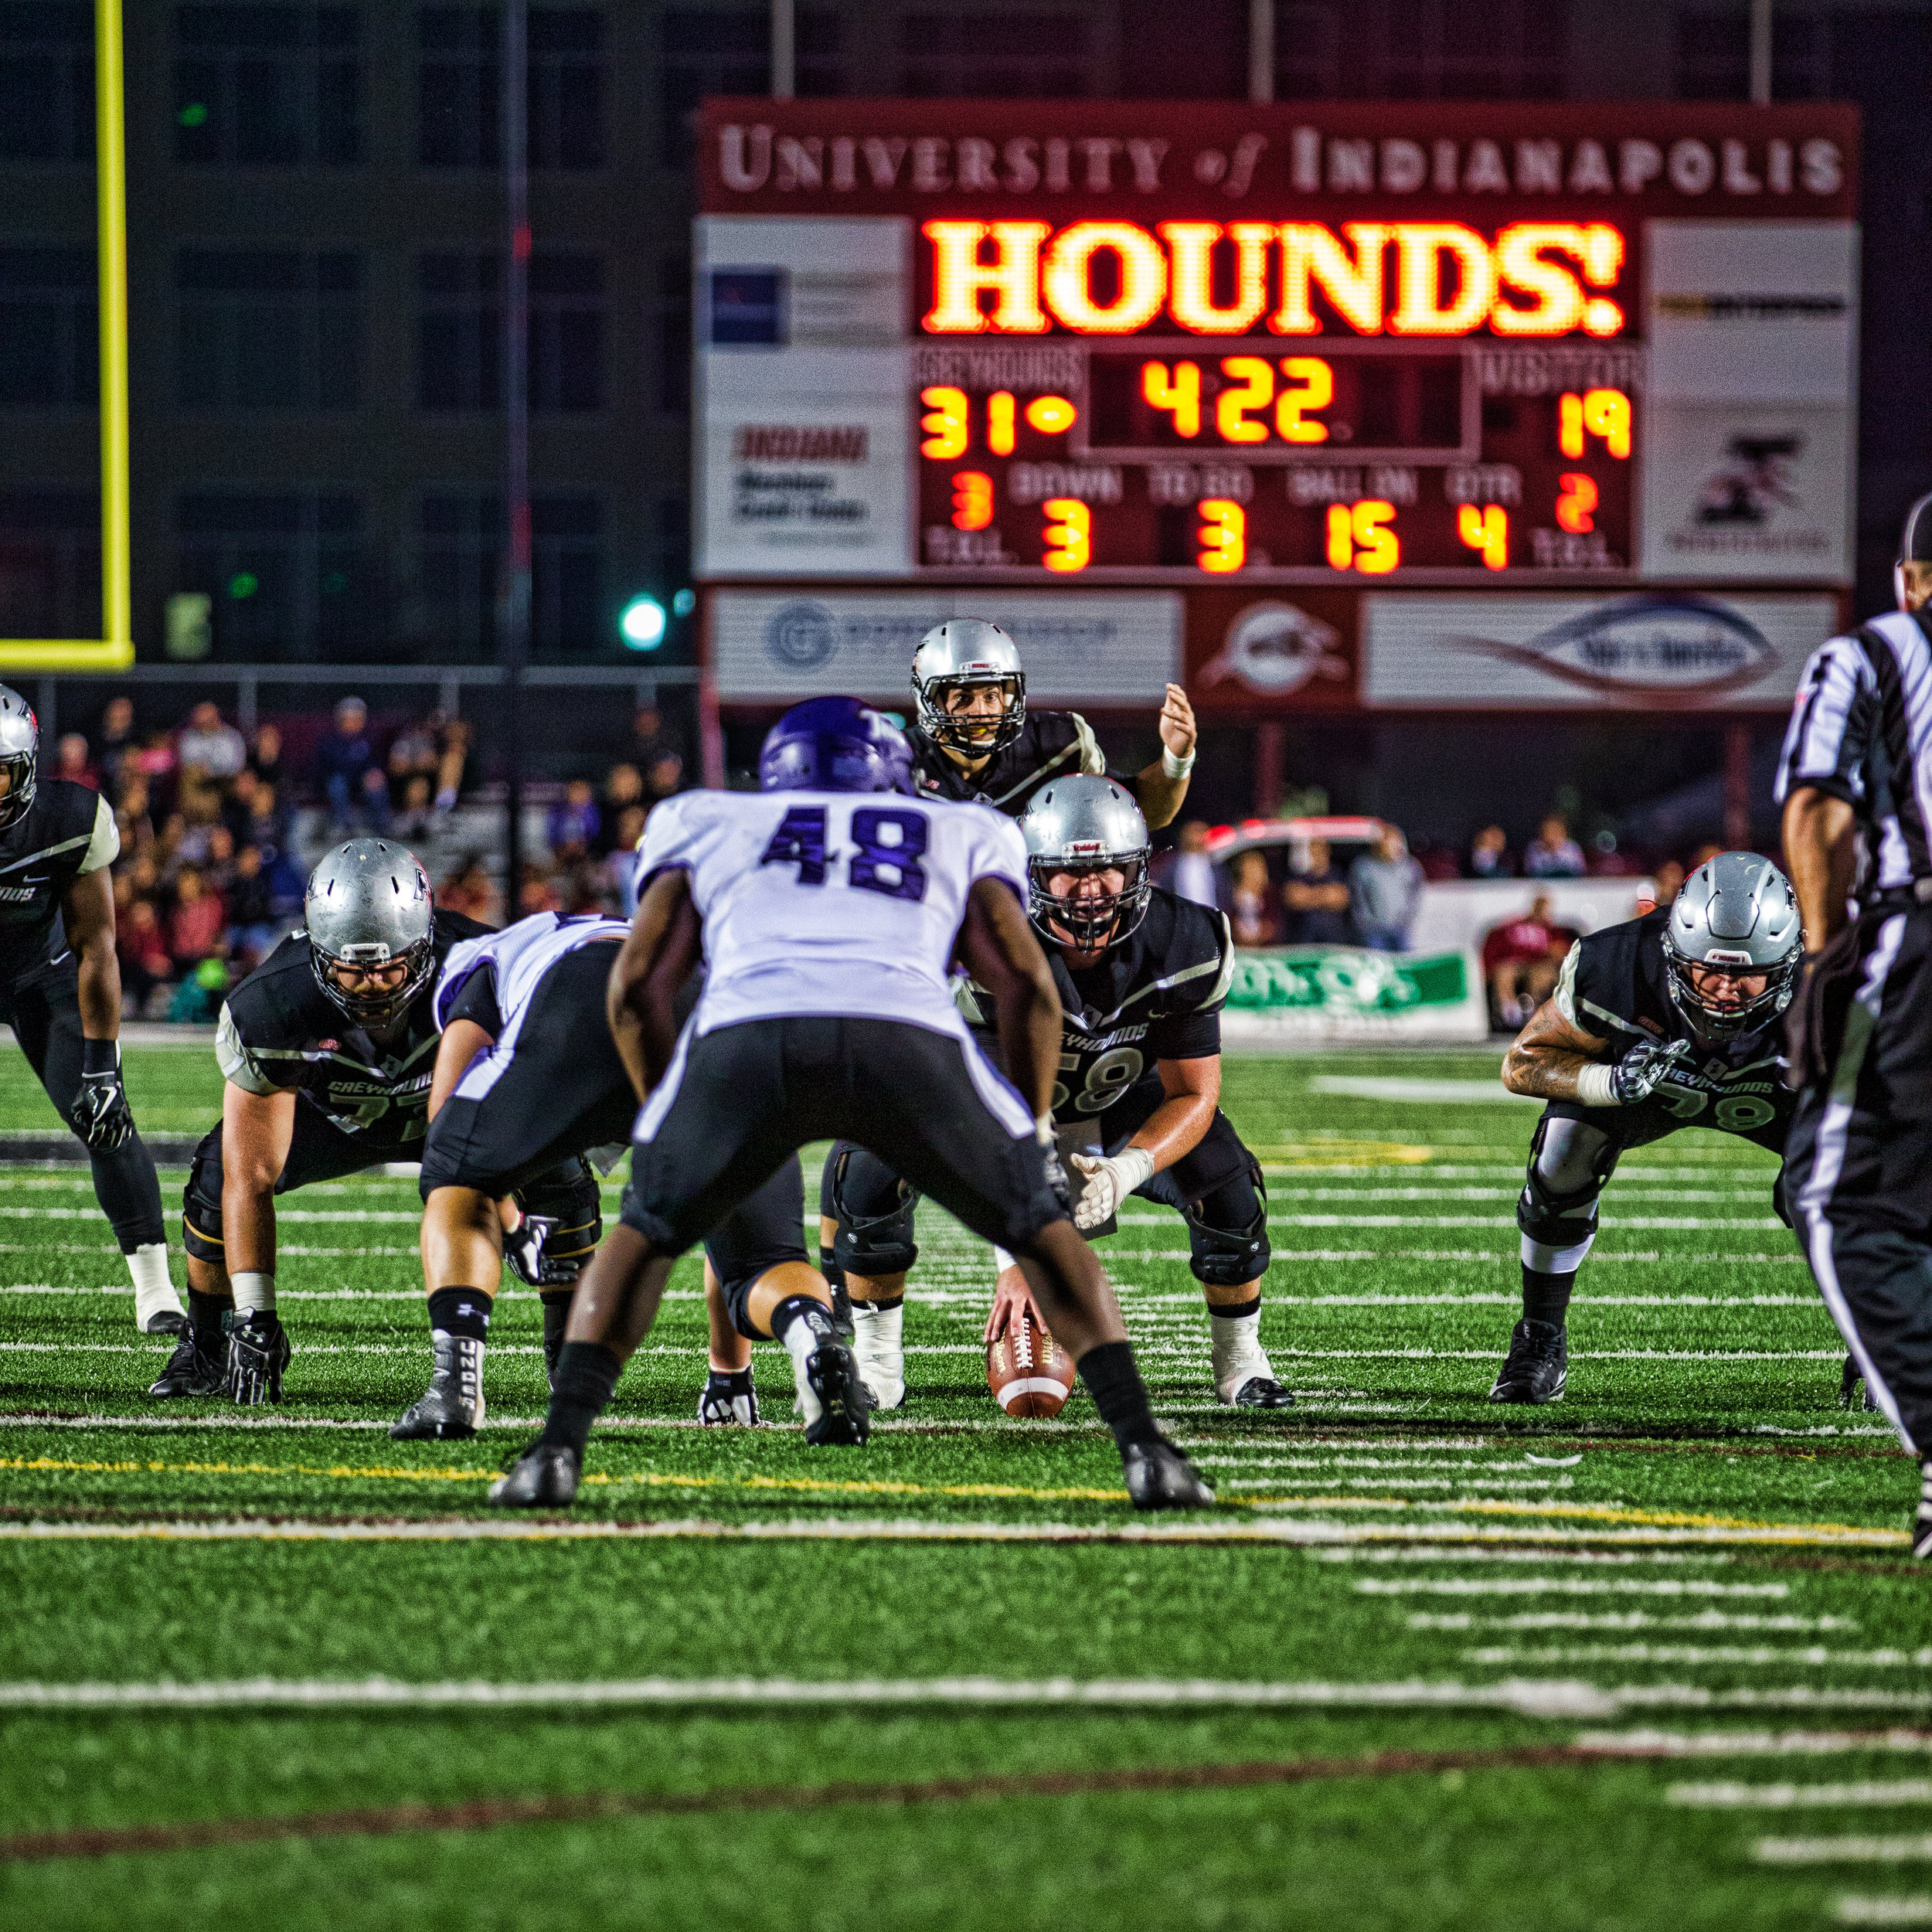 UIndy Football-6.jpg